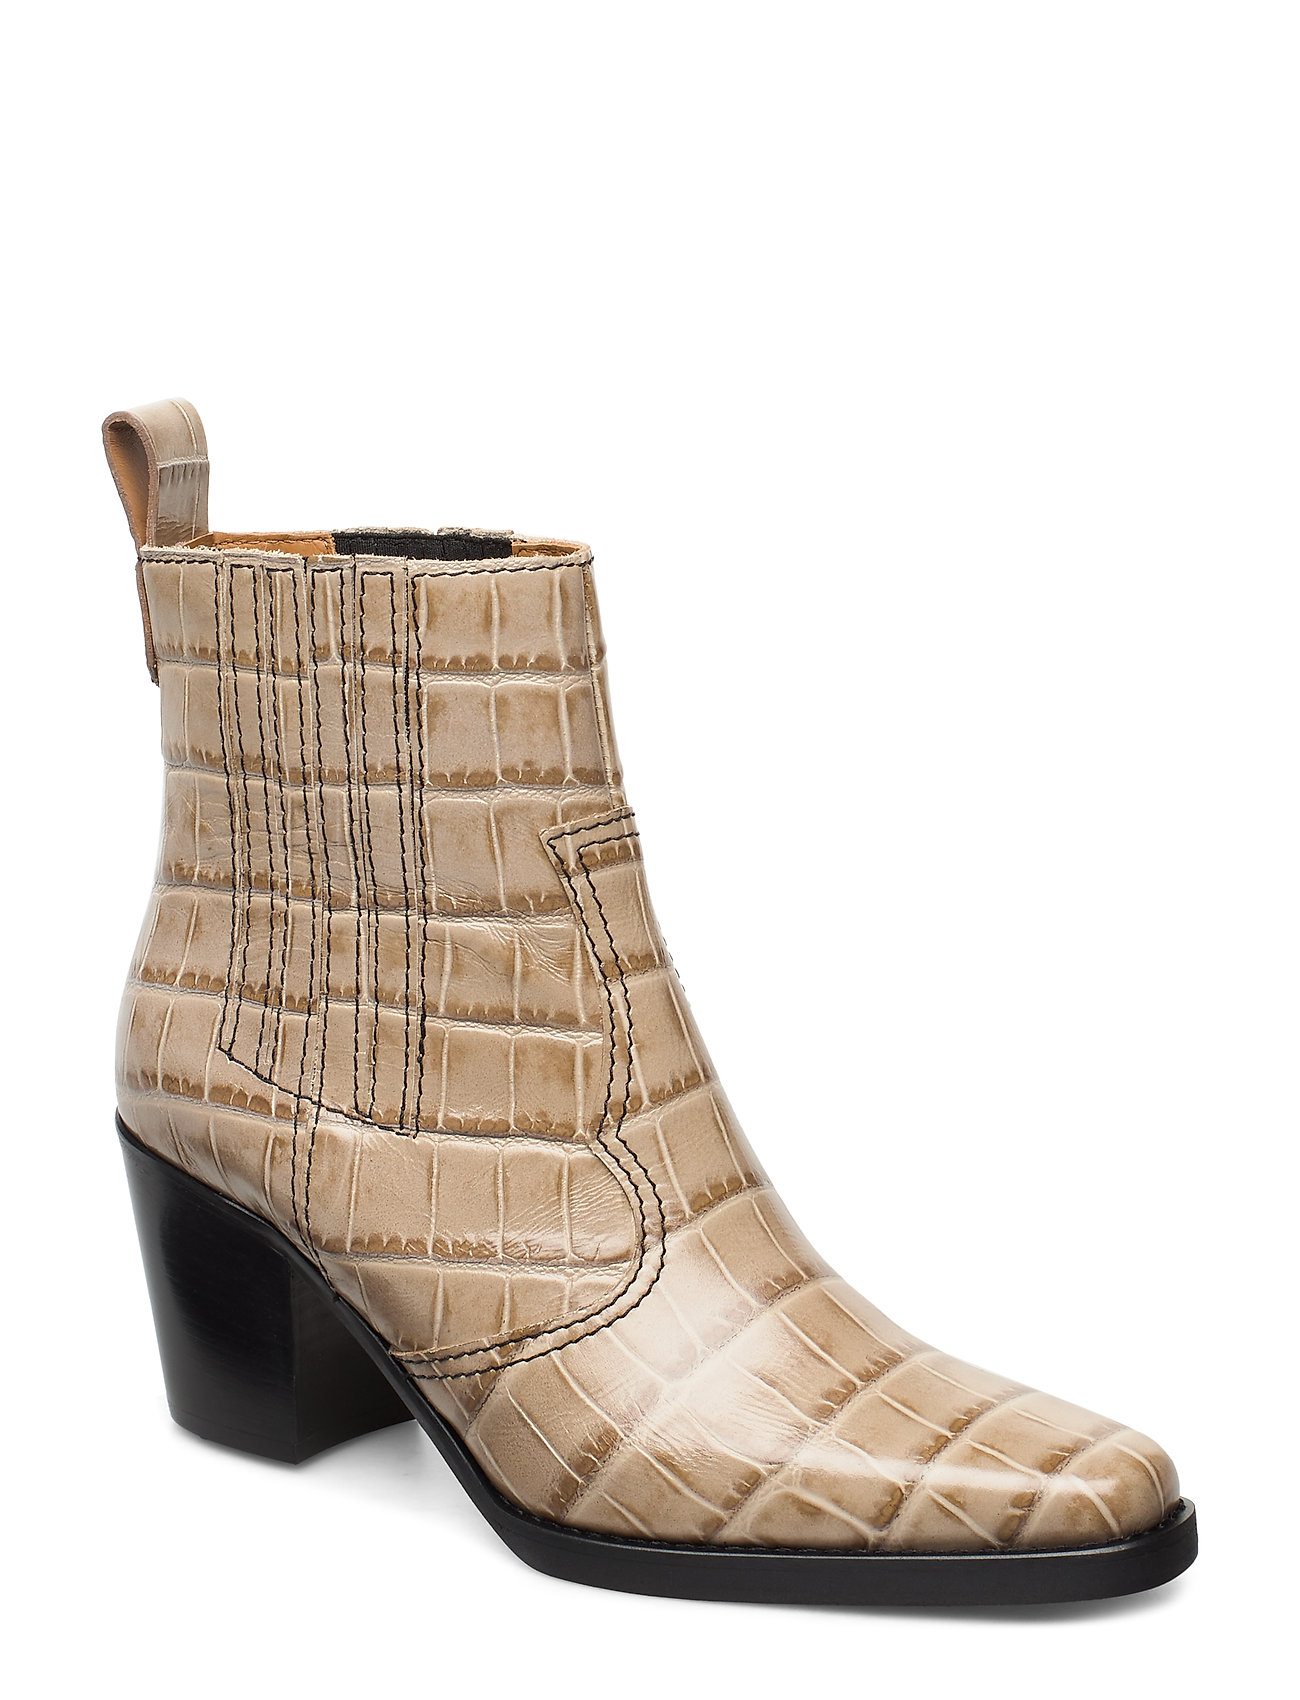 Image of Western Ankle Boots Shoes Boots Ankle Boots Ankle Boot - Heel Beige Ganni (3288857669)